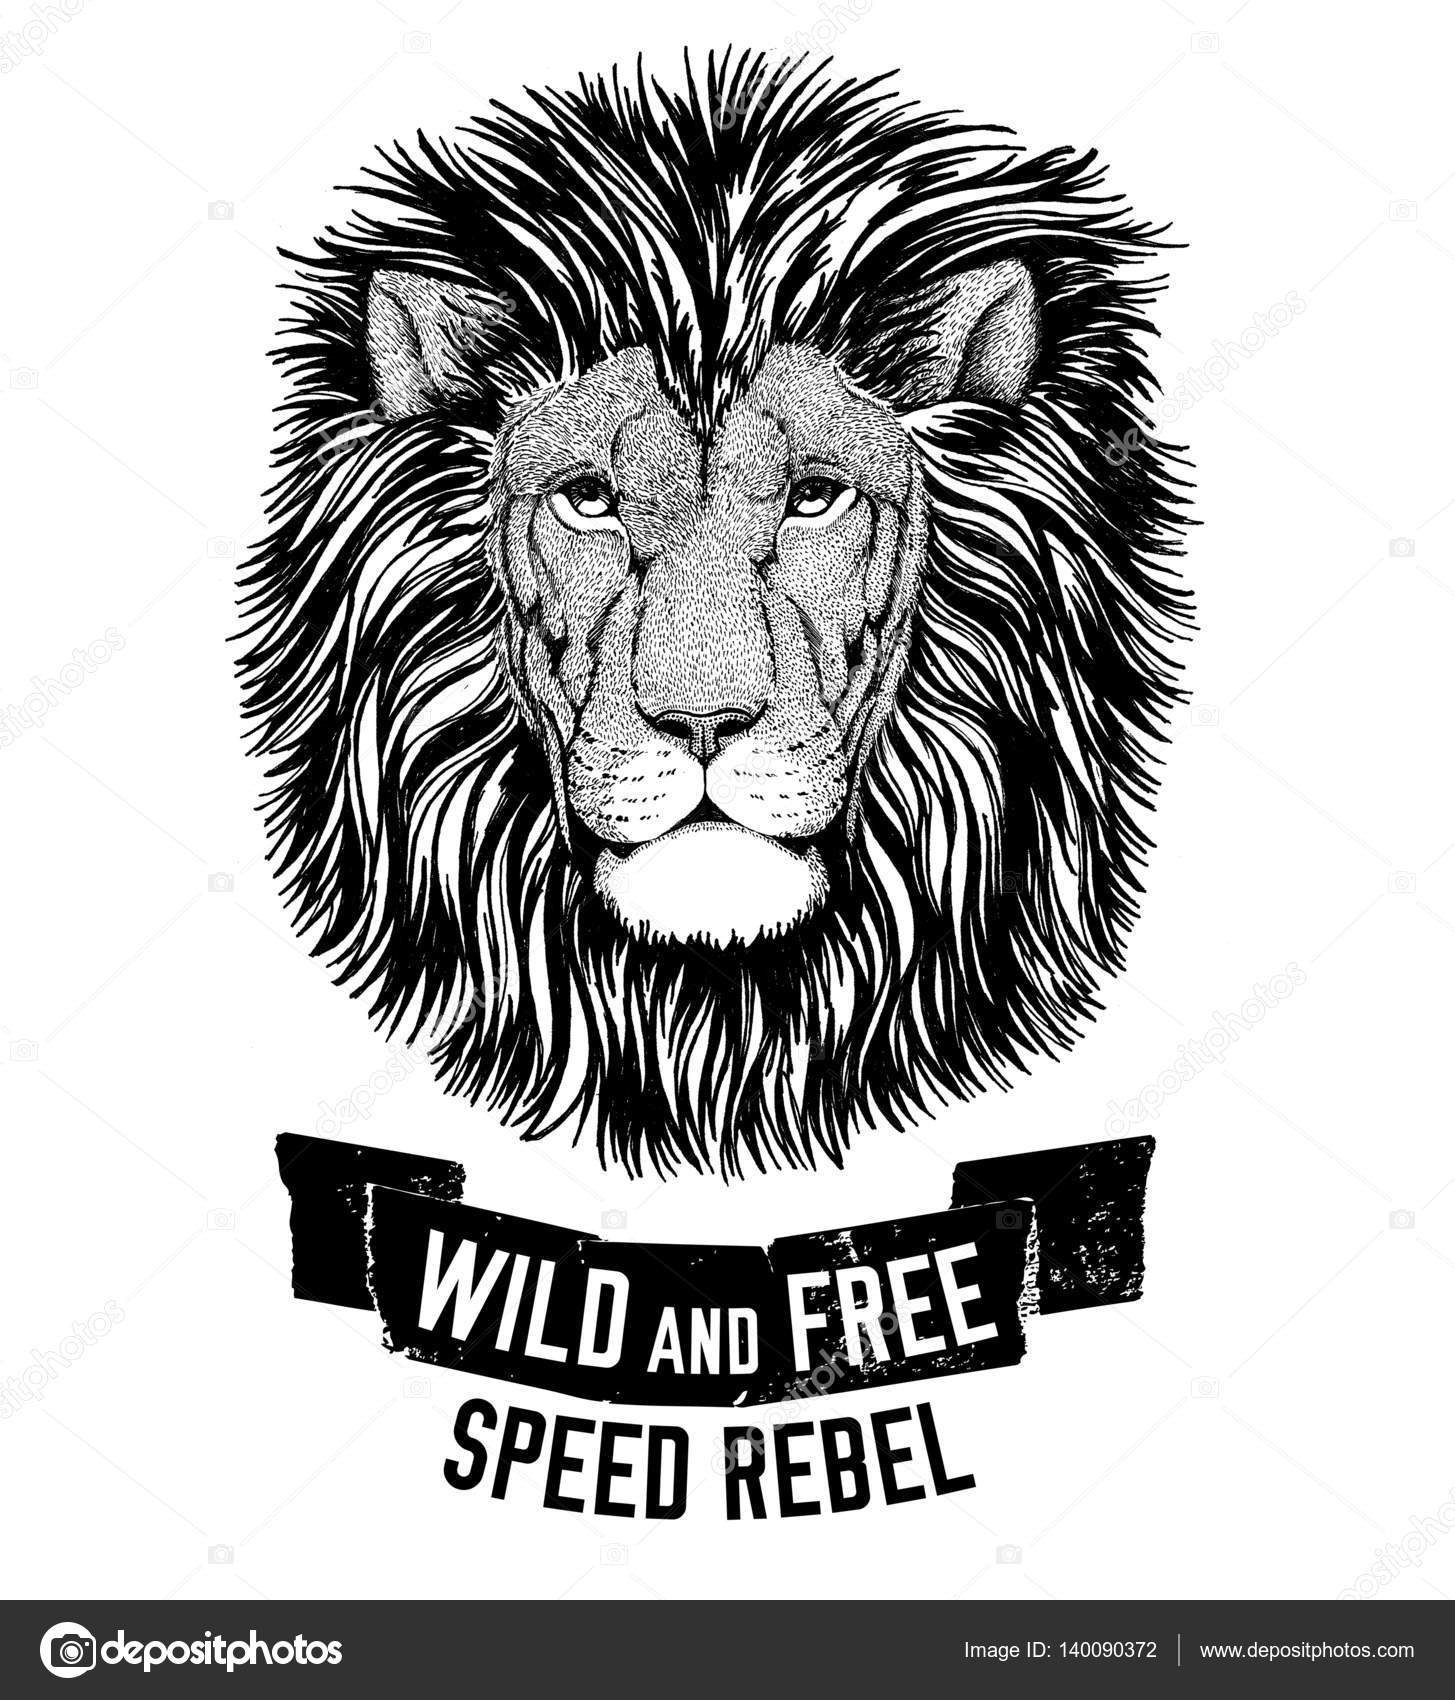 Free t-shirt design - Wild Tiger Wild Cat Be Wild And Free T Shirt Emblem Template Biker Motorcycle Design Hand Drawn Image Photo By Helen_f